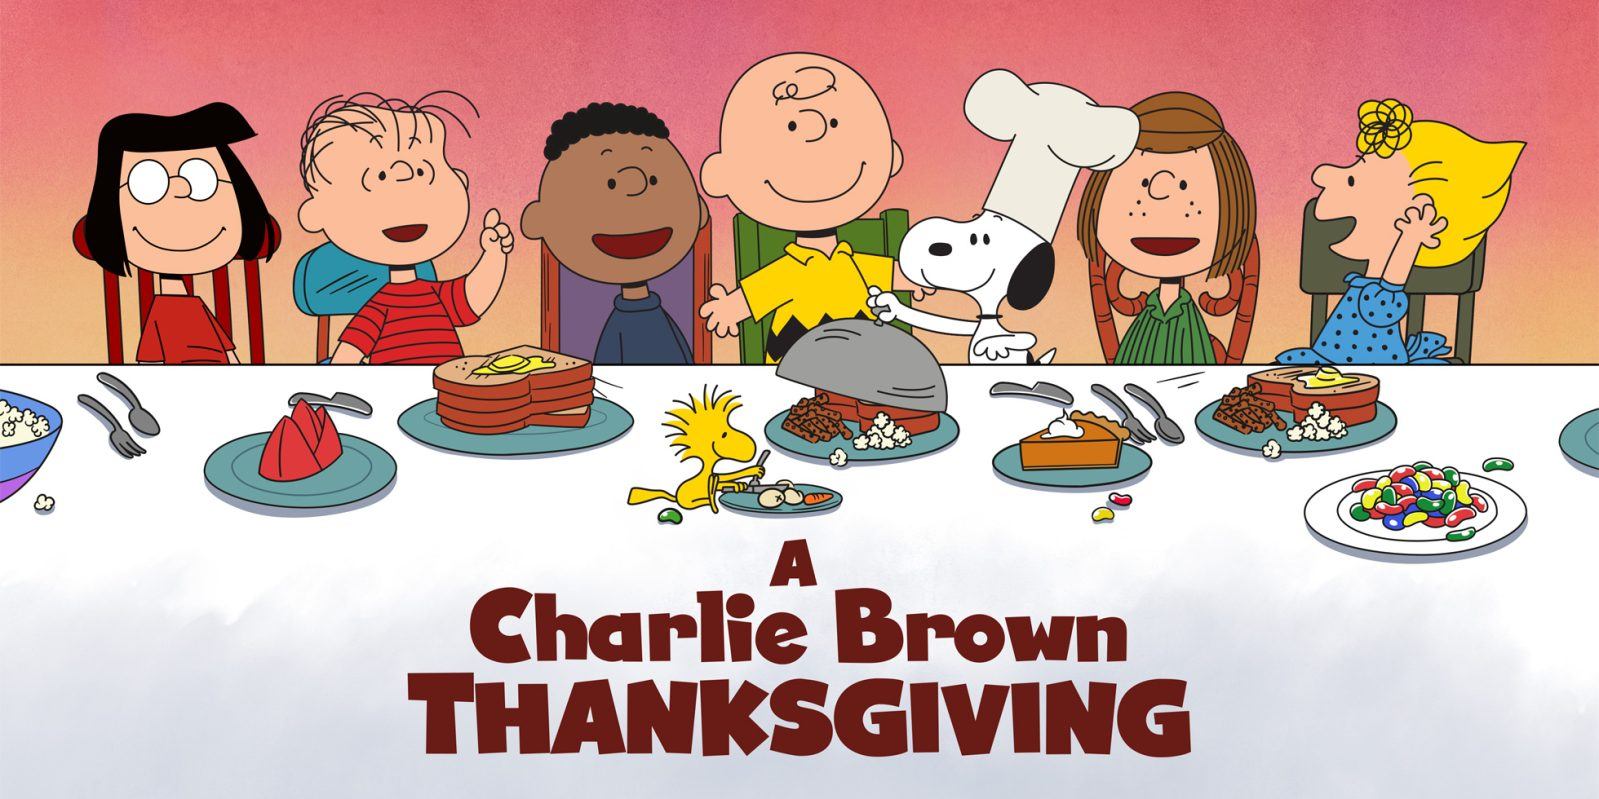 Christmas In Dc Pbs Specials 2021 Following Apple Tv Exclusivity Backlash The Holiday Peanuts Specials Will Also Air On Pbs 9to5mac